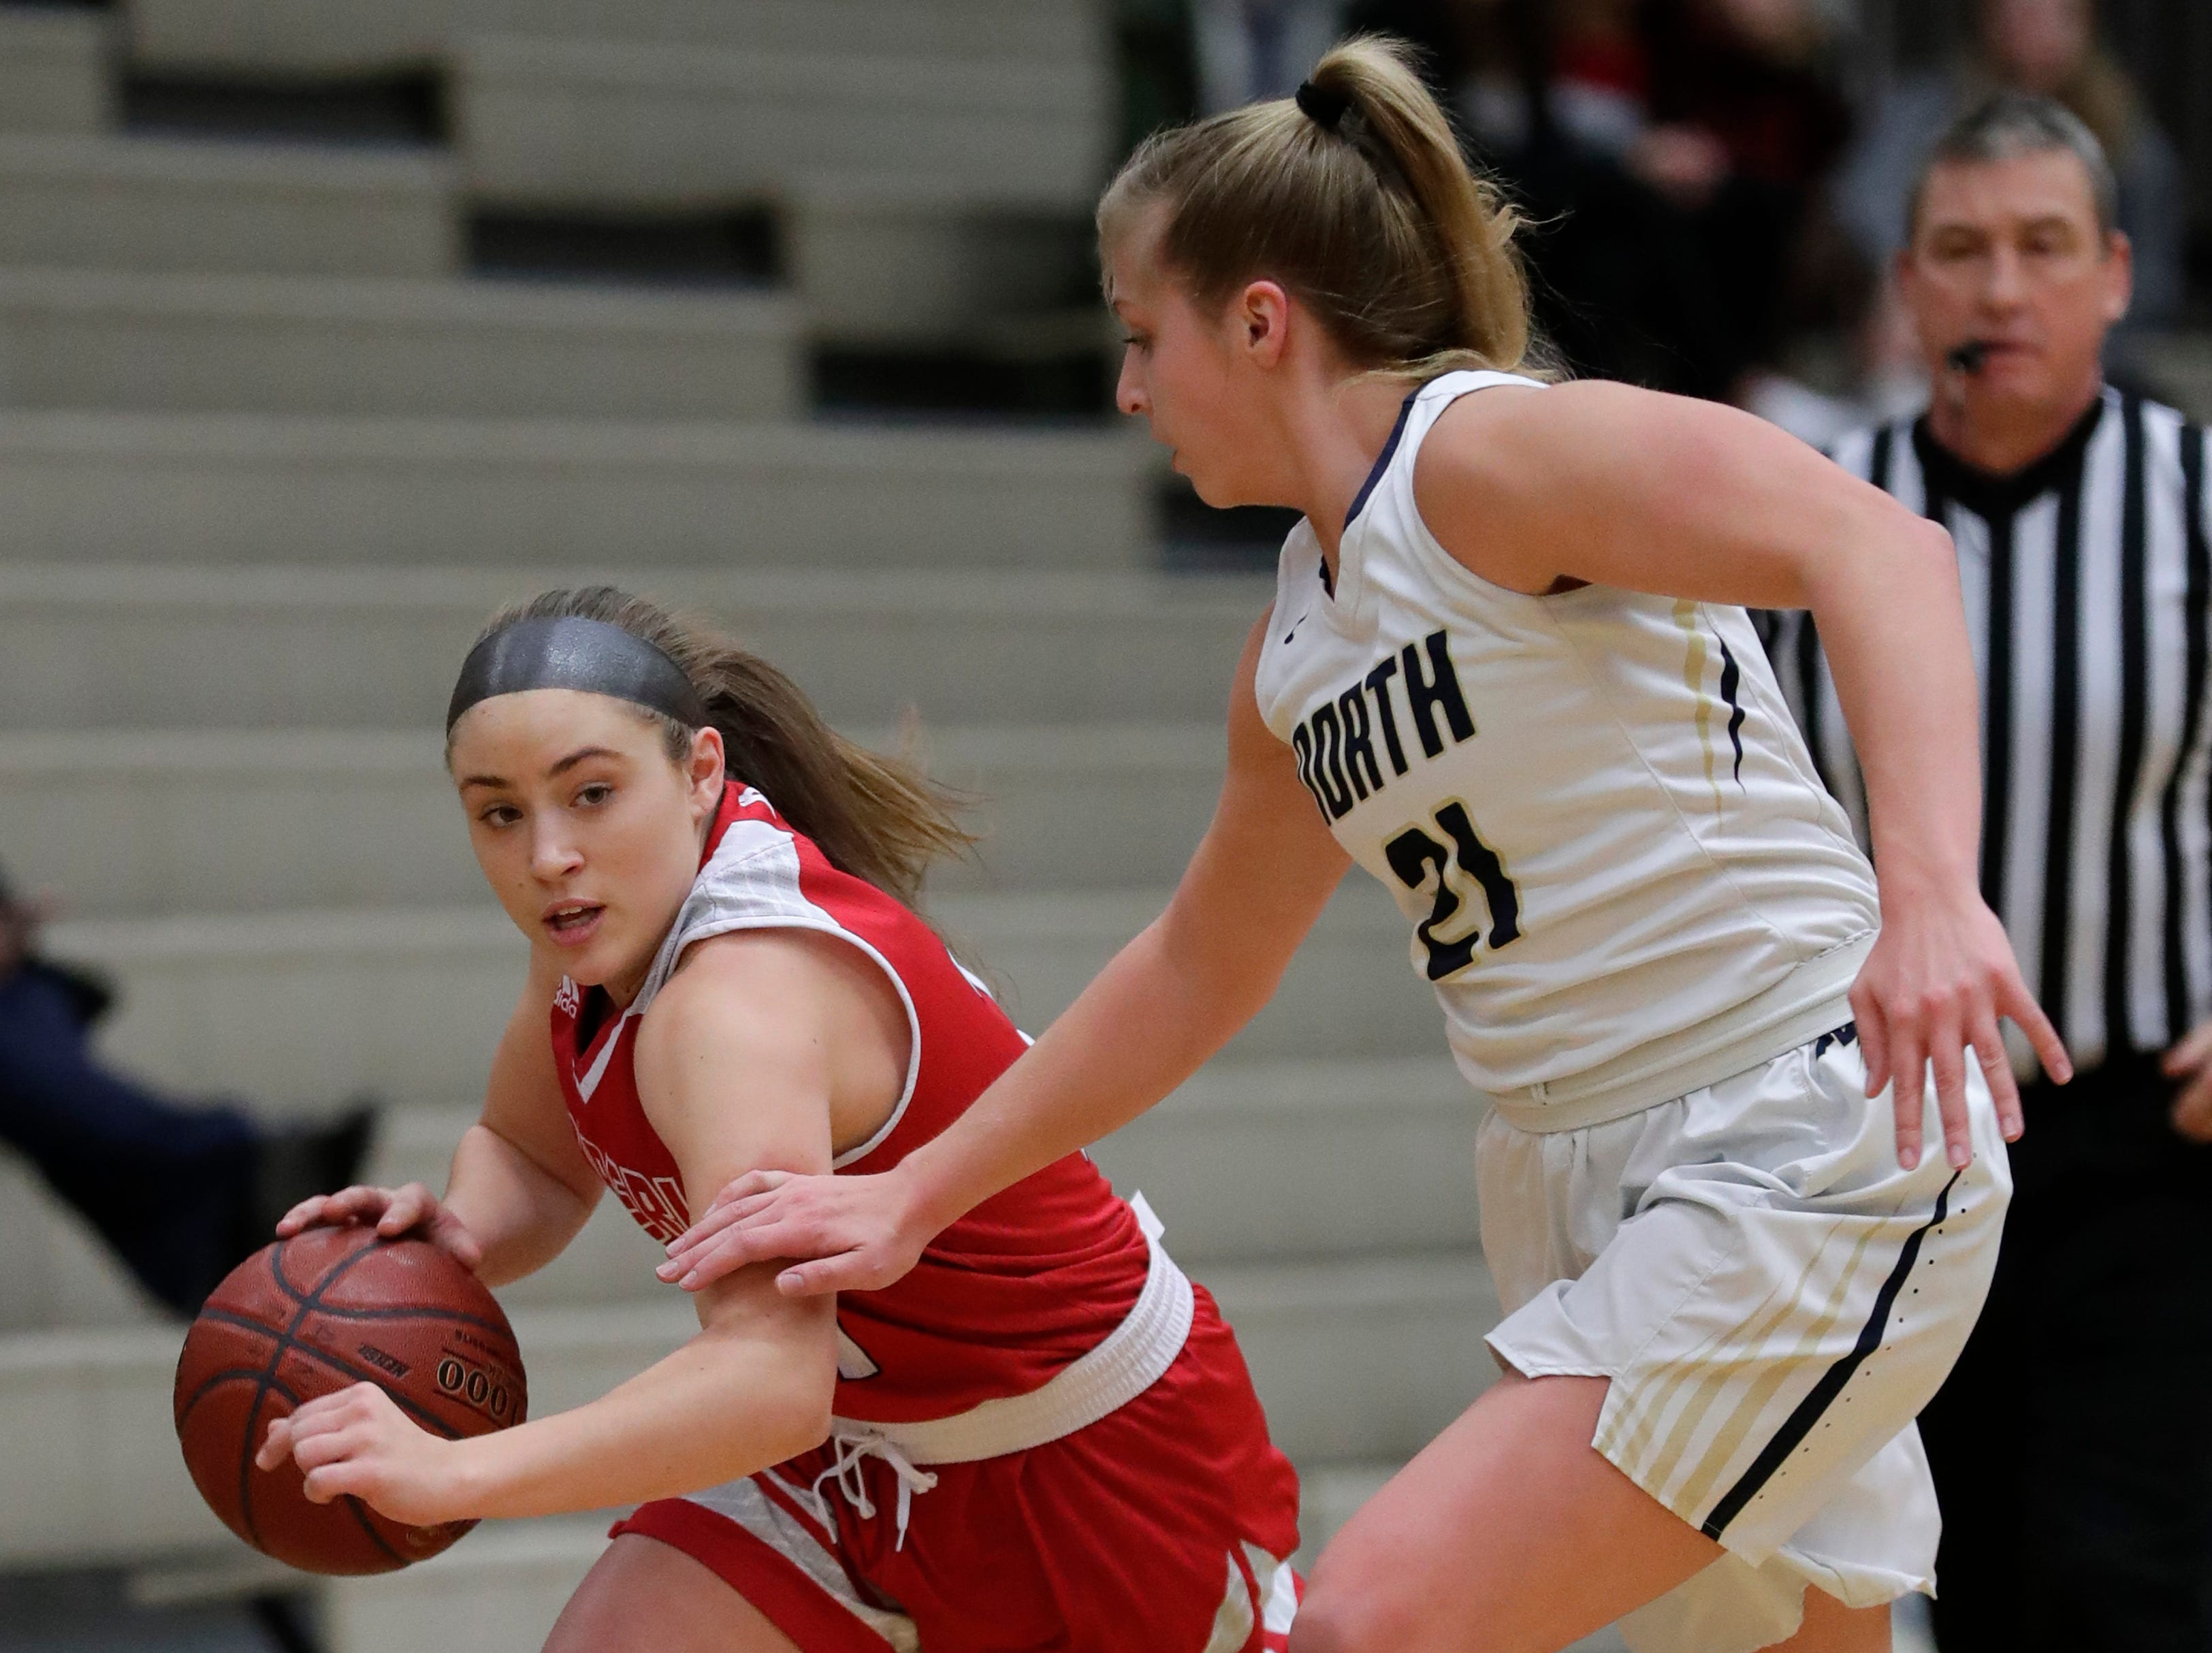 Kimberly High School's Kiara Schmidt (12) tries to get past Appleton North High School's Lilli Van Handel (21) during their girls basketball game Tuesday, January 8, 2019, in Appleton, Wis. Dan Powers/USA TODAY NETWORK-Wisconsin